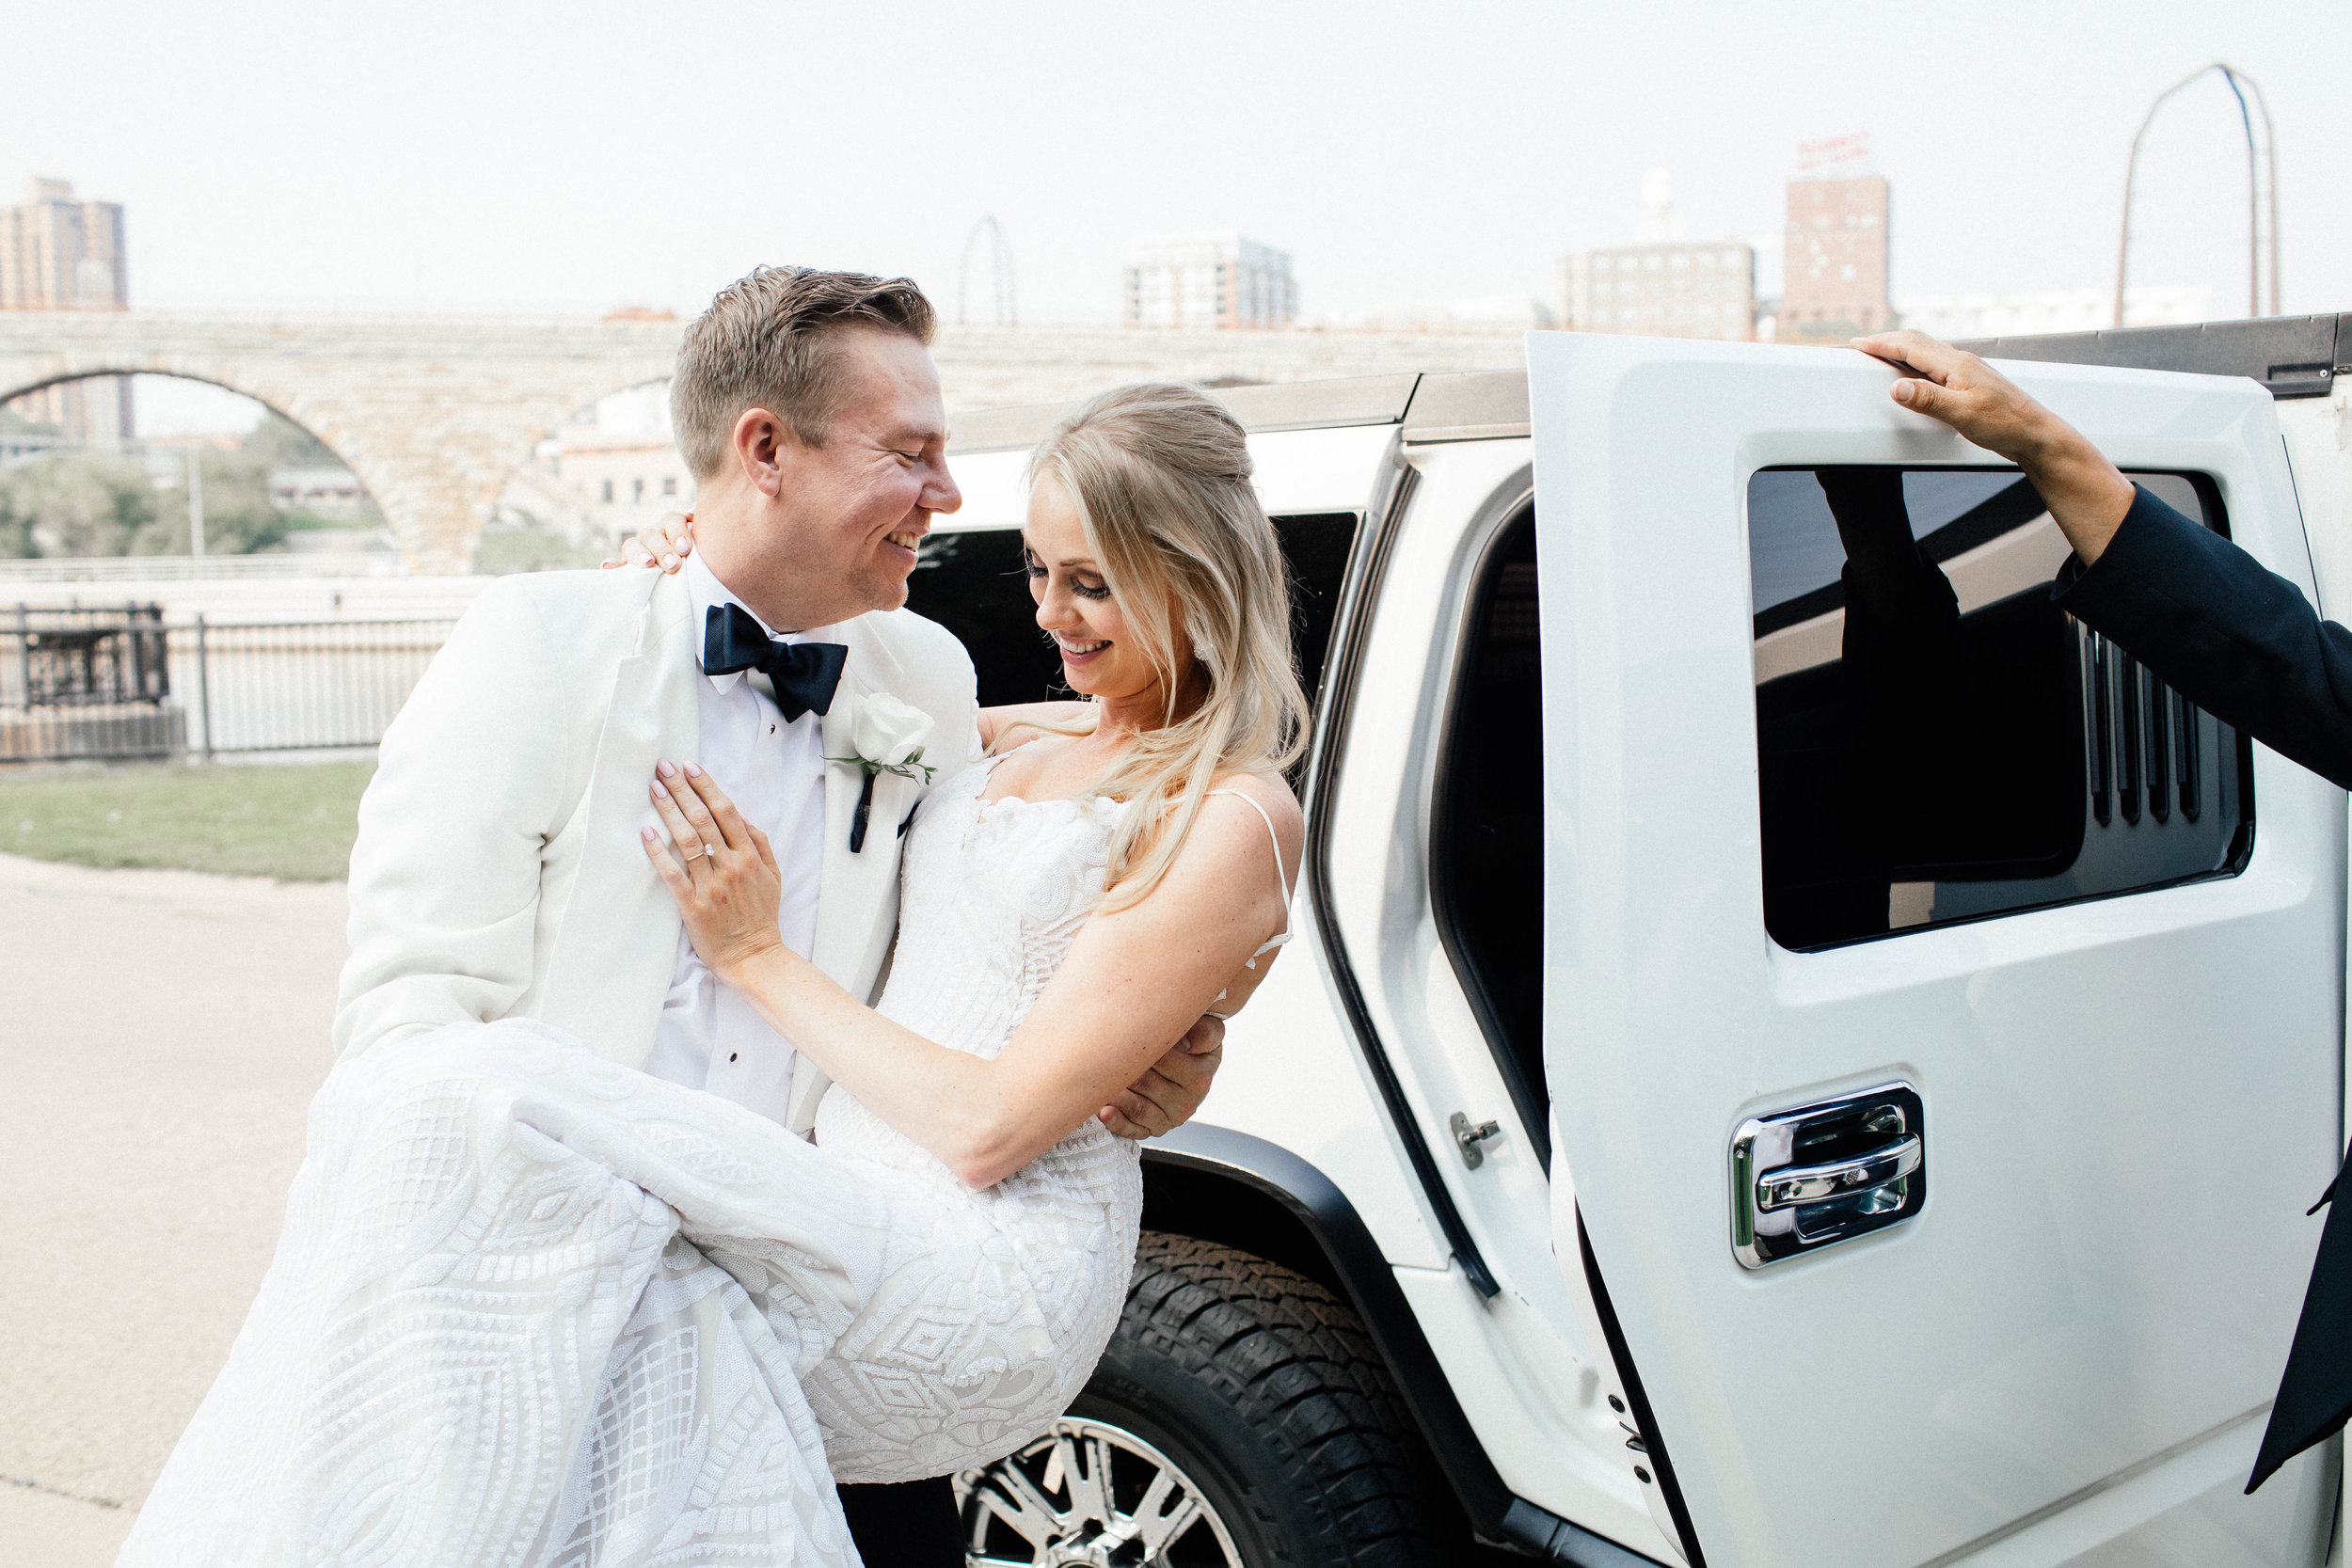 Hewing Hotel Wedding Photography groom helping bride into limo